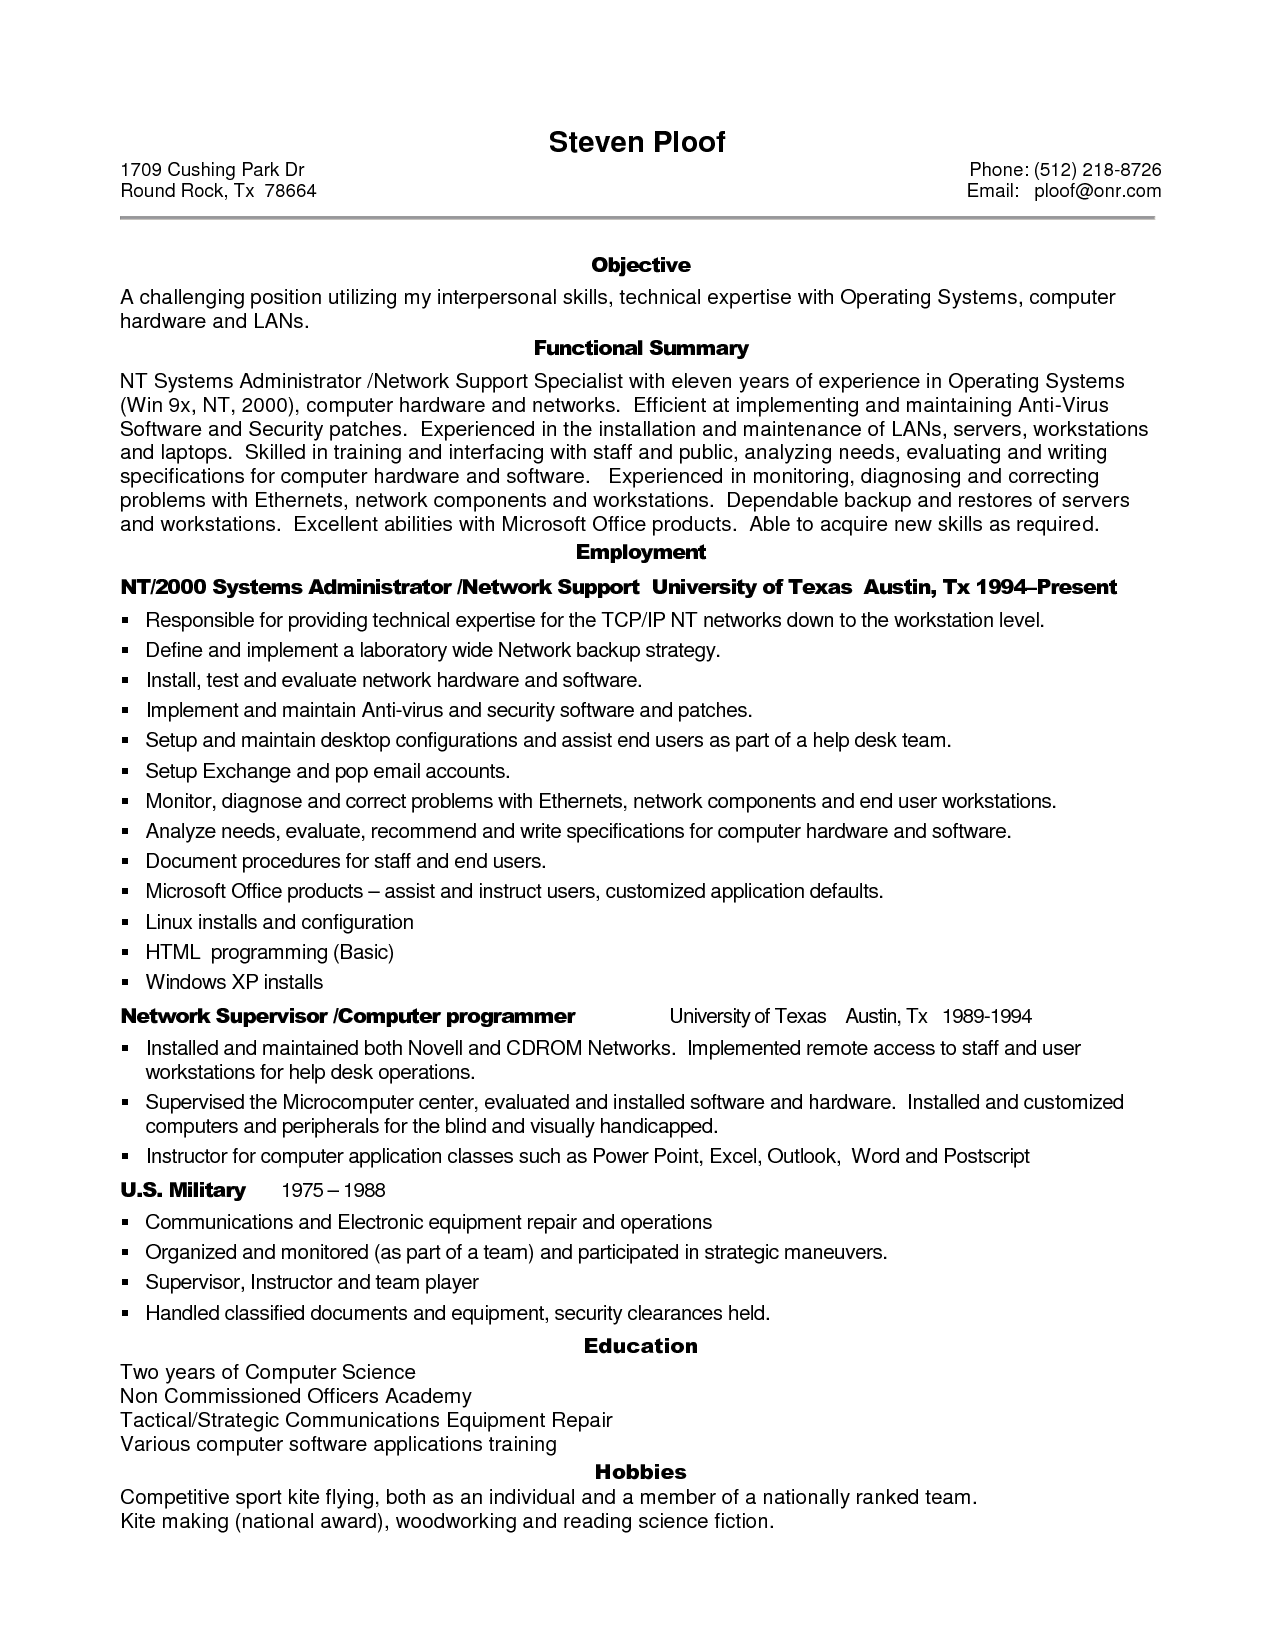 sample resume for experienced it professional sample resume for experienced it professional resume tips for - Resume Objectives For It Professionals